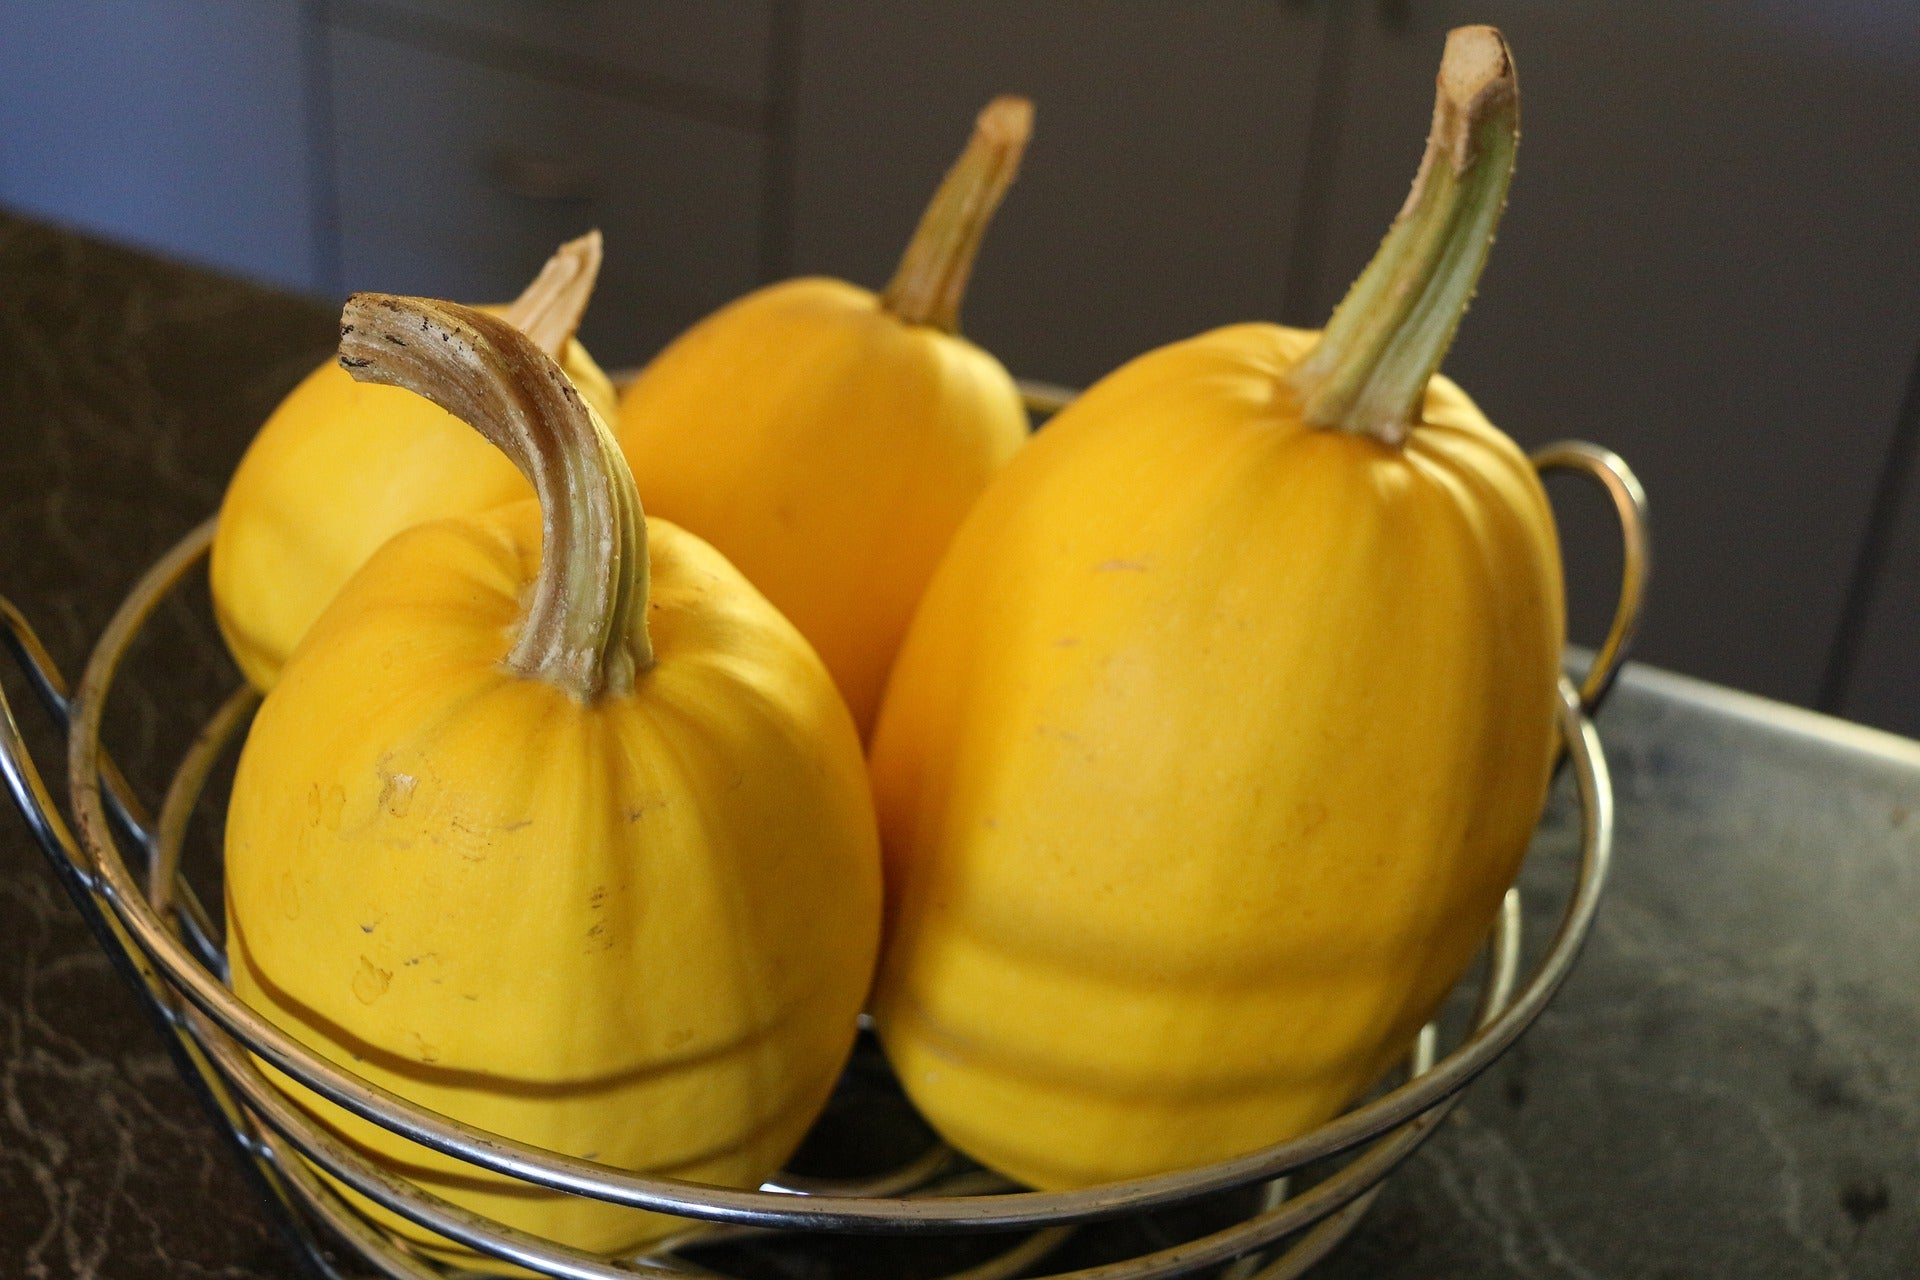 Squash, spaghetti, small ones